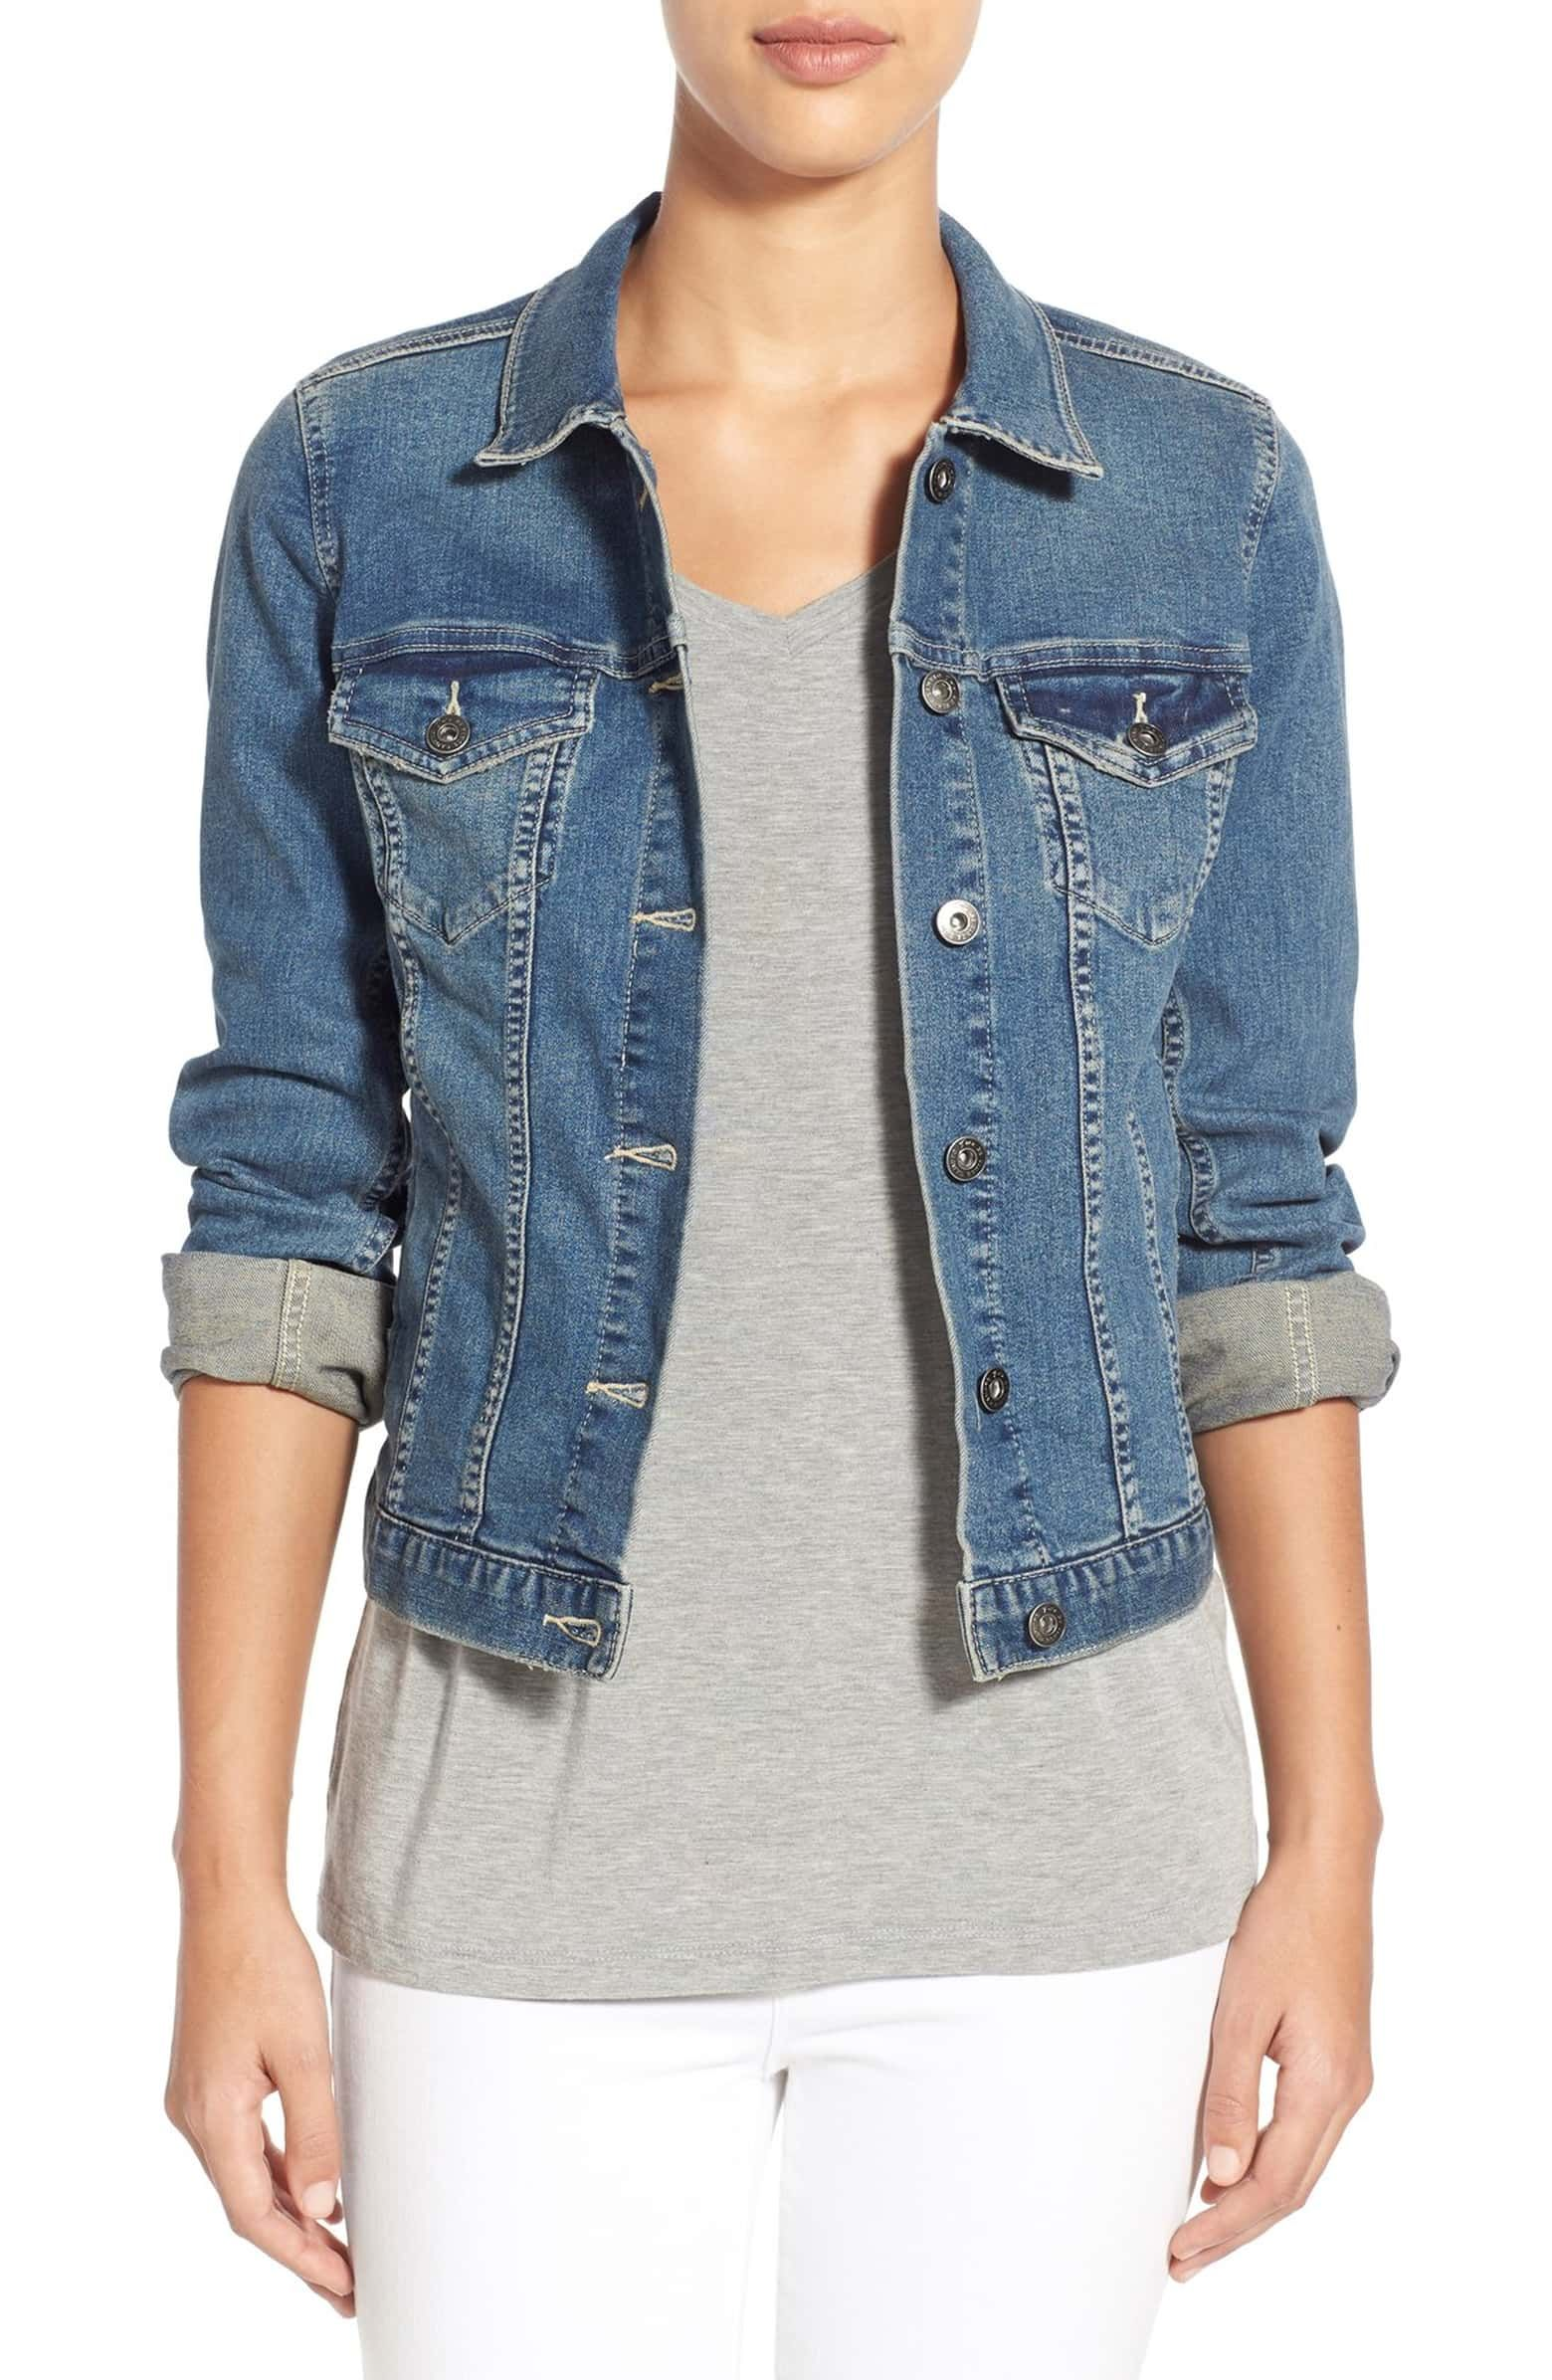 Vince Camuto Womens Jean Jacket